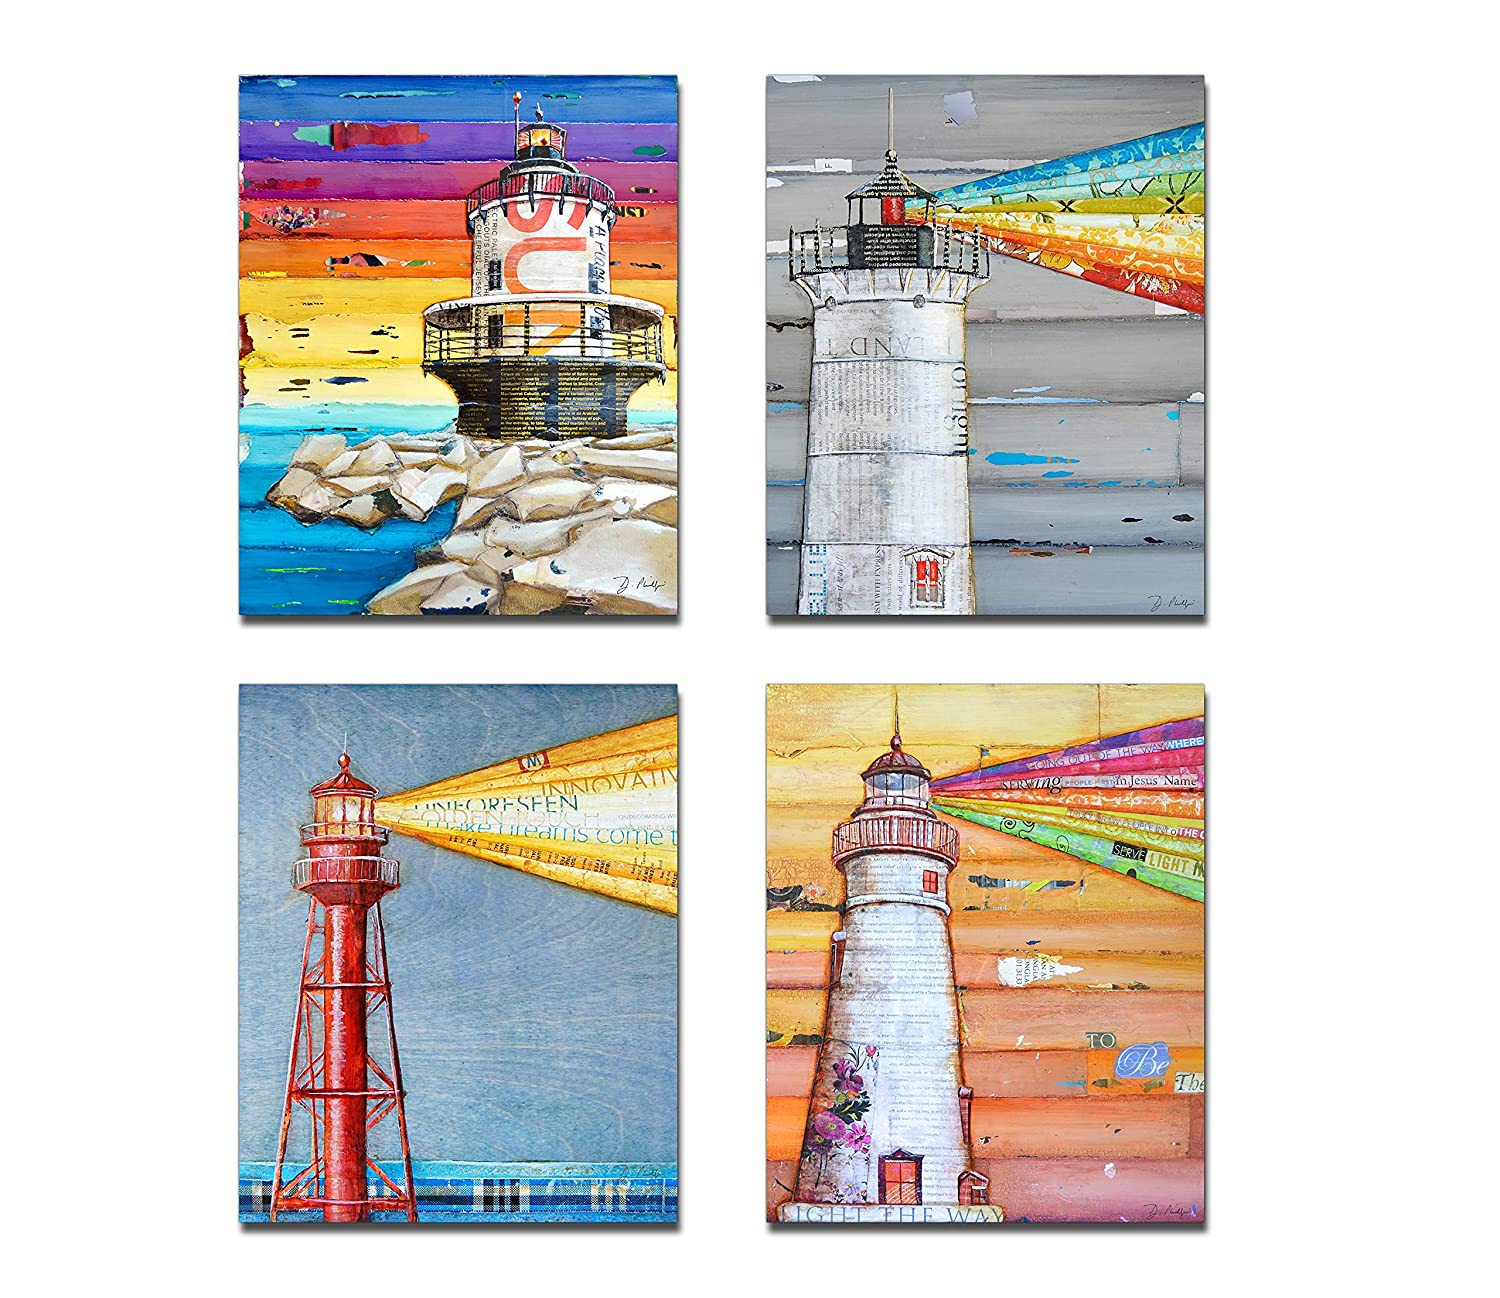 Lighthouse Art Prints, Set of 4, By Danny Phillips, Unframed, Mixed Media Collage Wall Art Decor Posters, 8x10 Inches